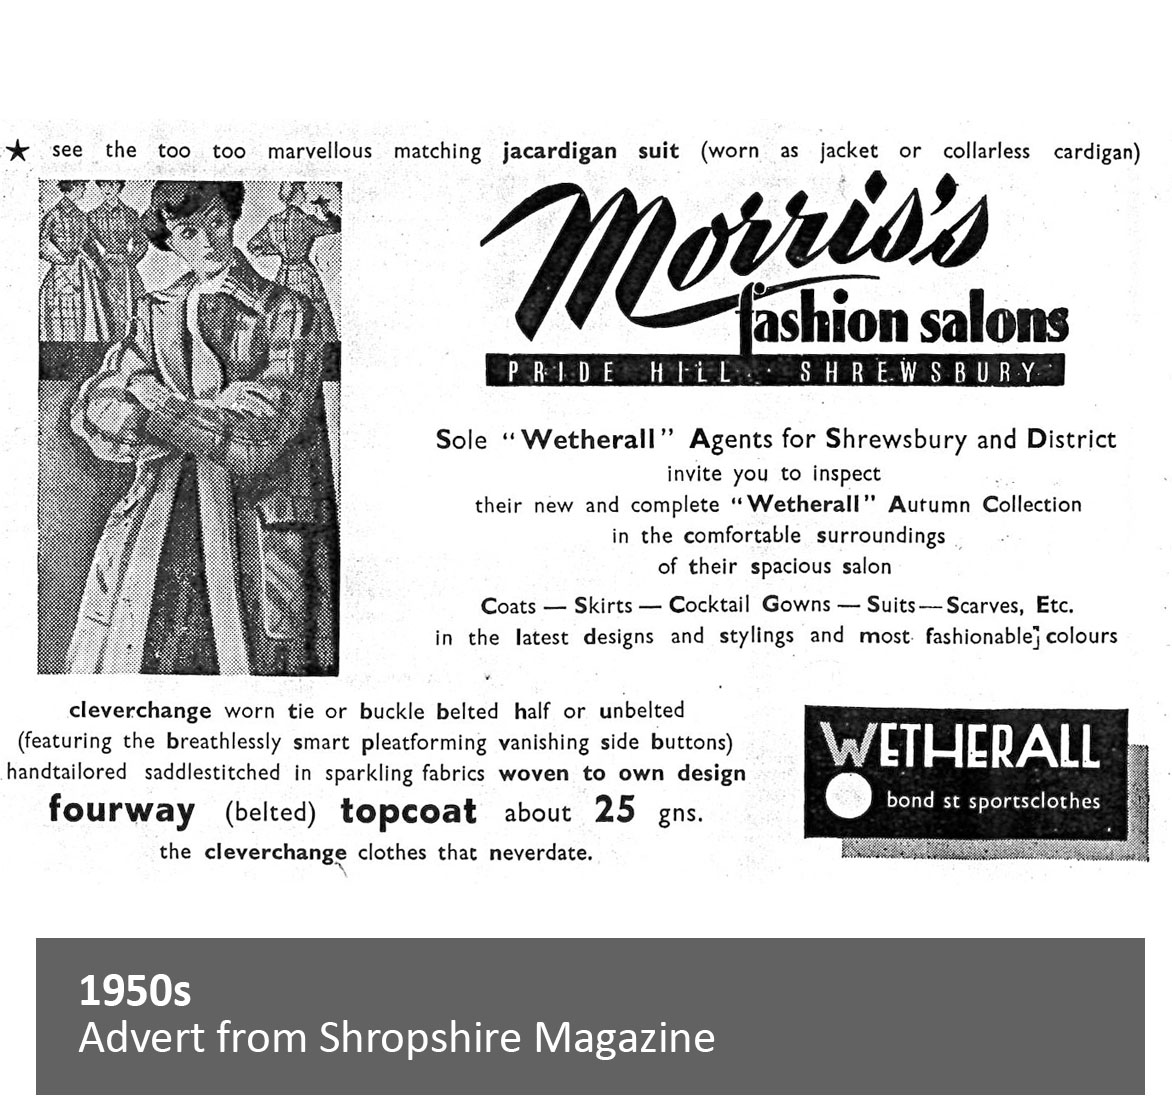 Advert from Shropshire Magazine